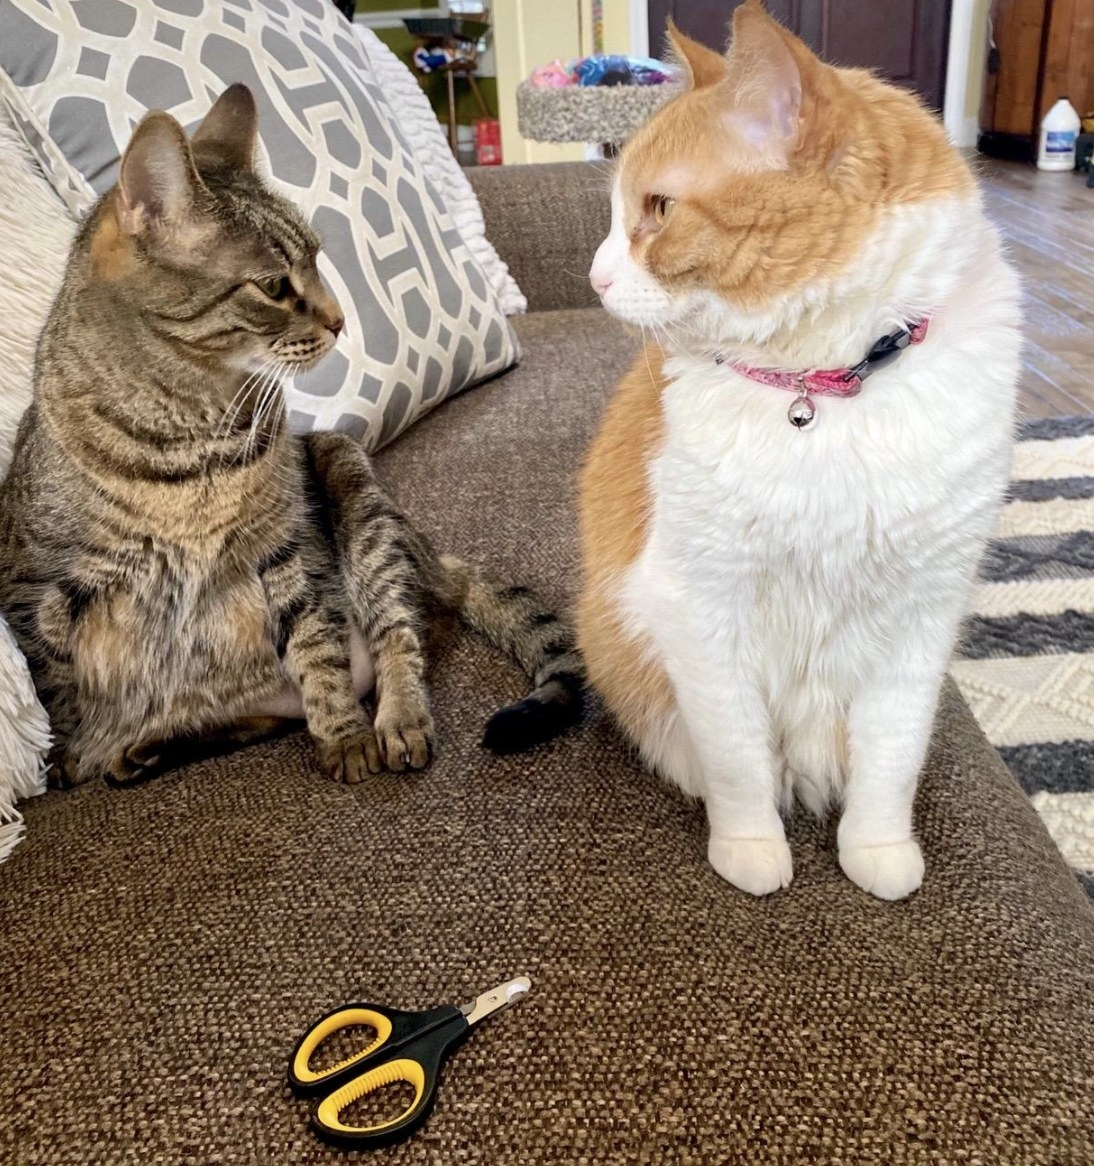 Two cats standing next to nail clippers